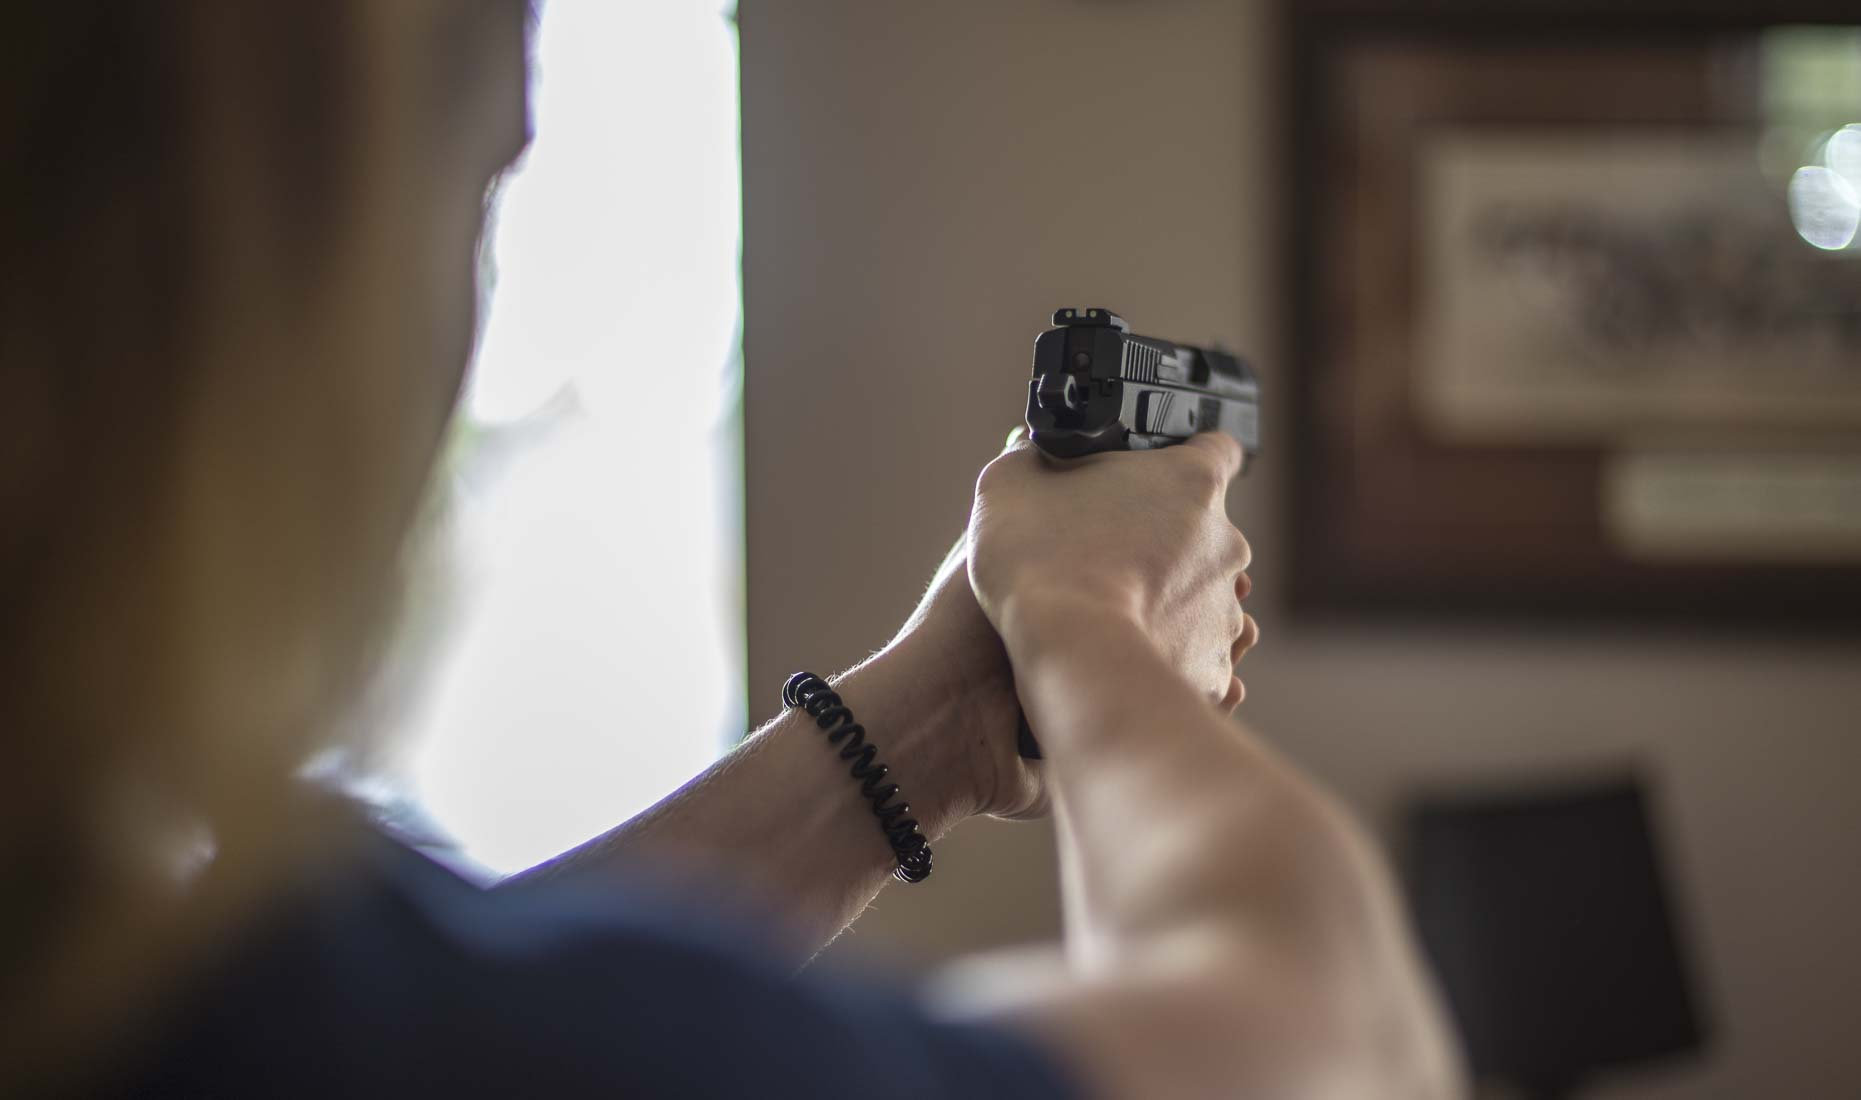 Idaho Strengthens Its Constitutional Carry Law